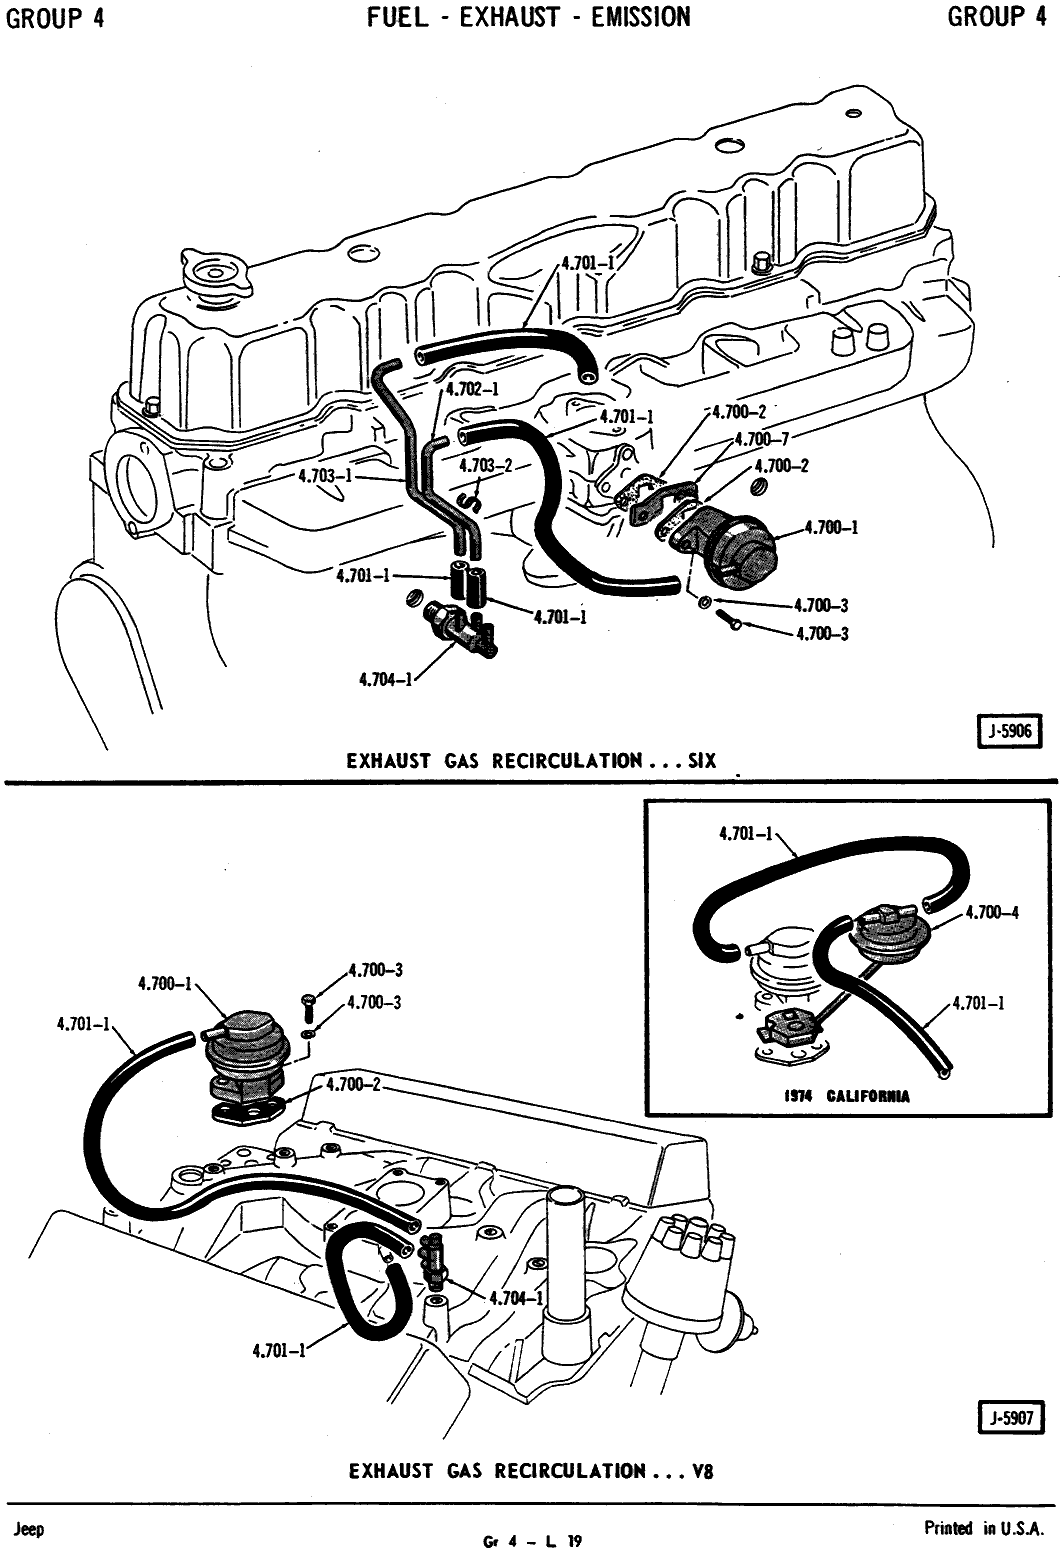 2014 jeep wrangler automatic transmission diagram html